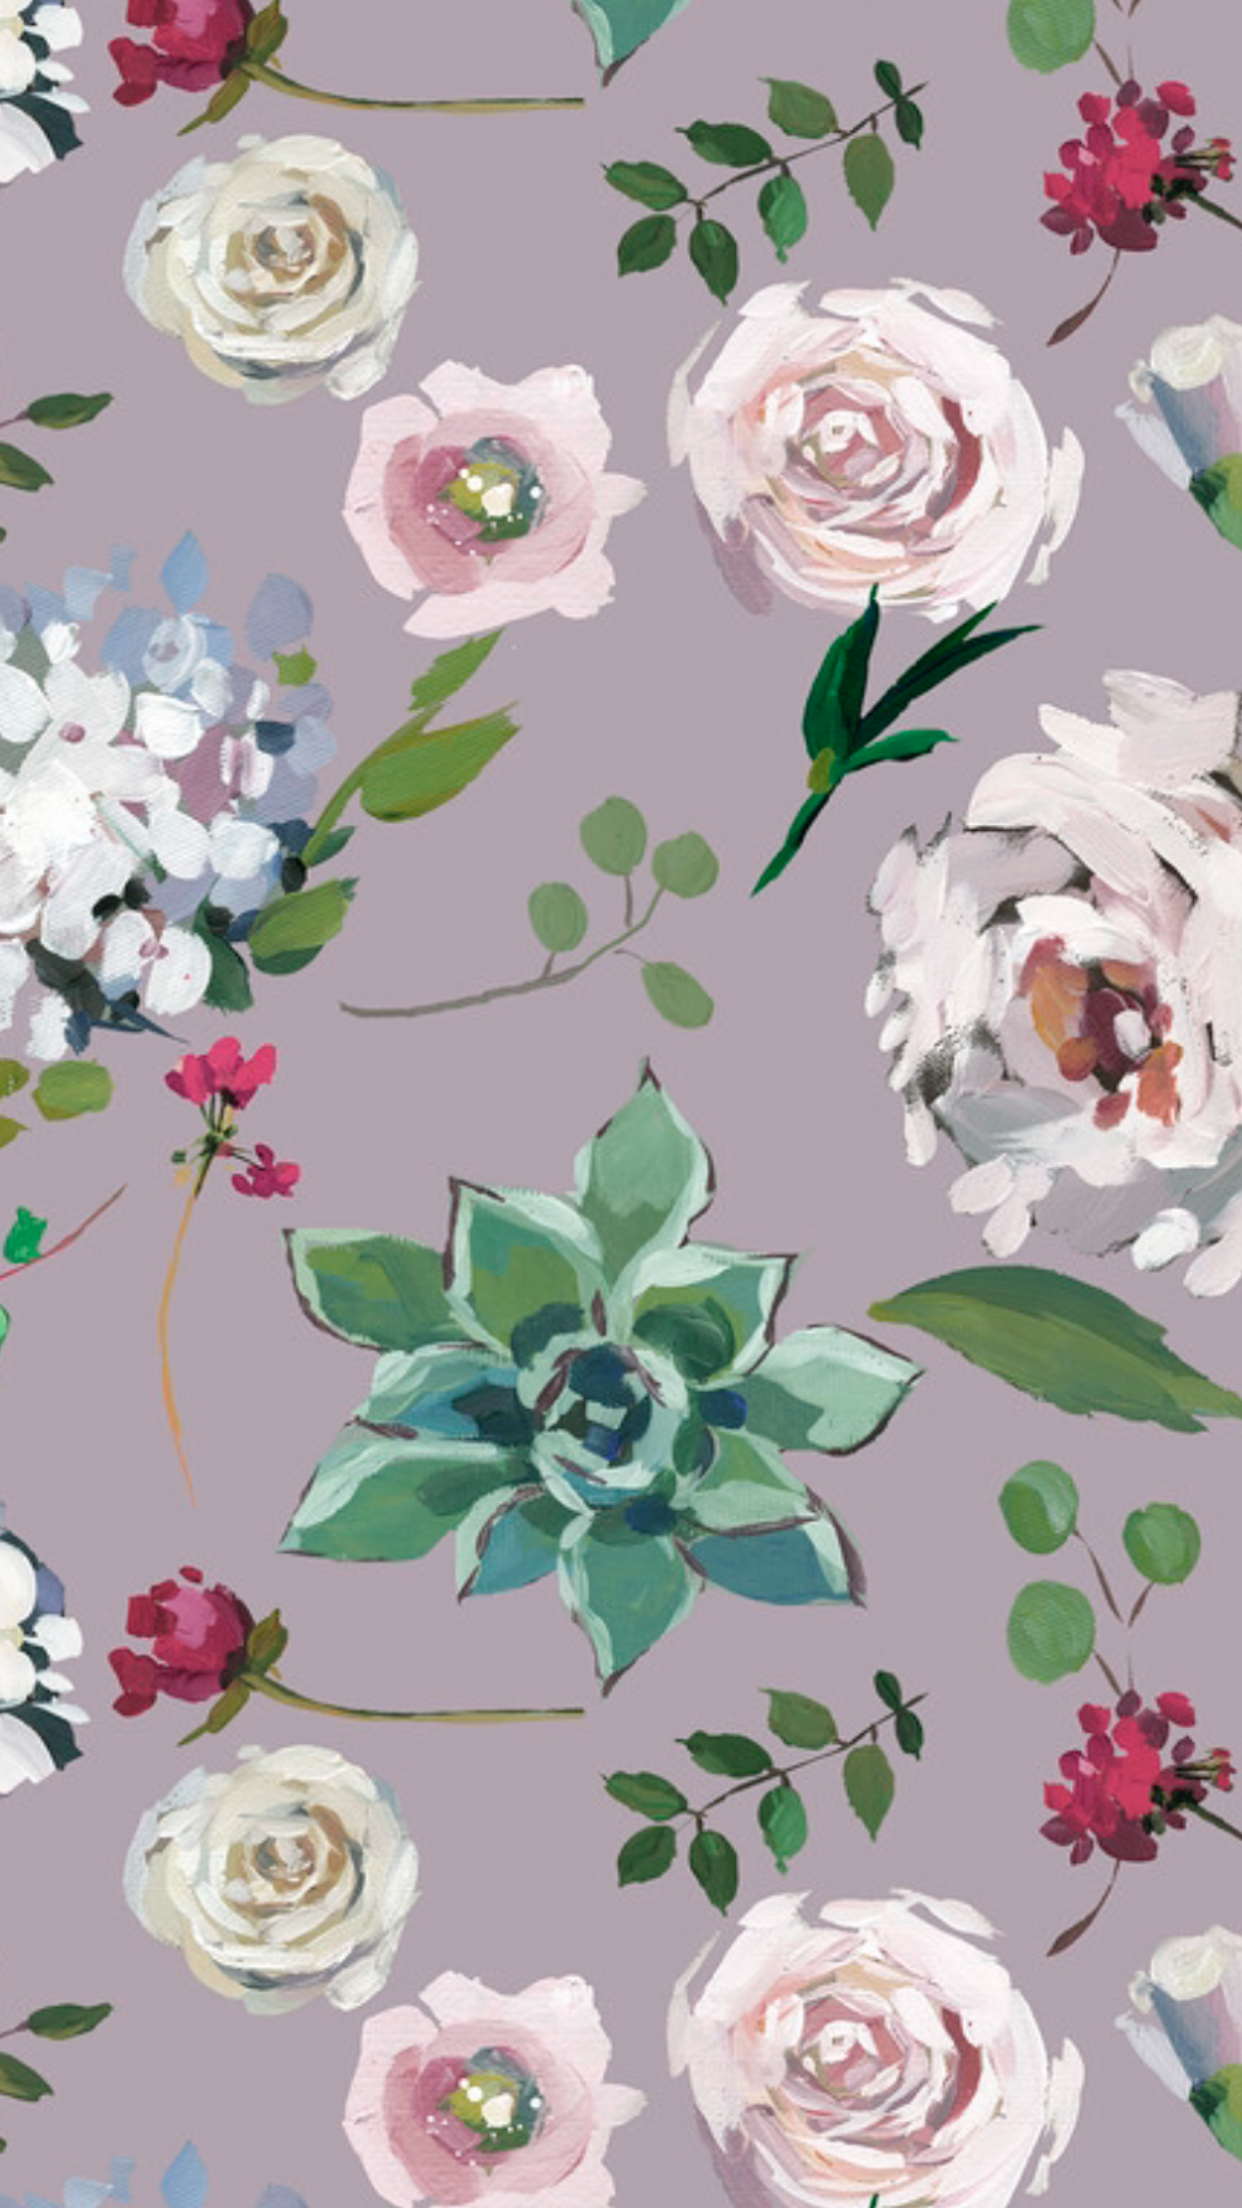 Pin by Alison Winwood on Beautiful Backgrounds in 2019